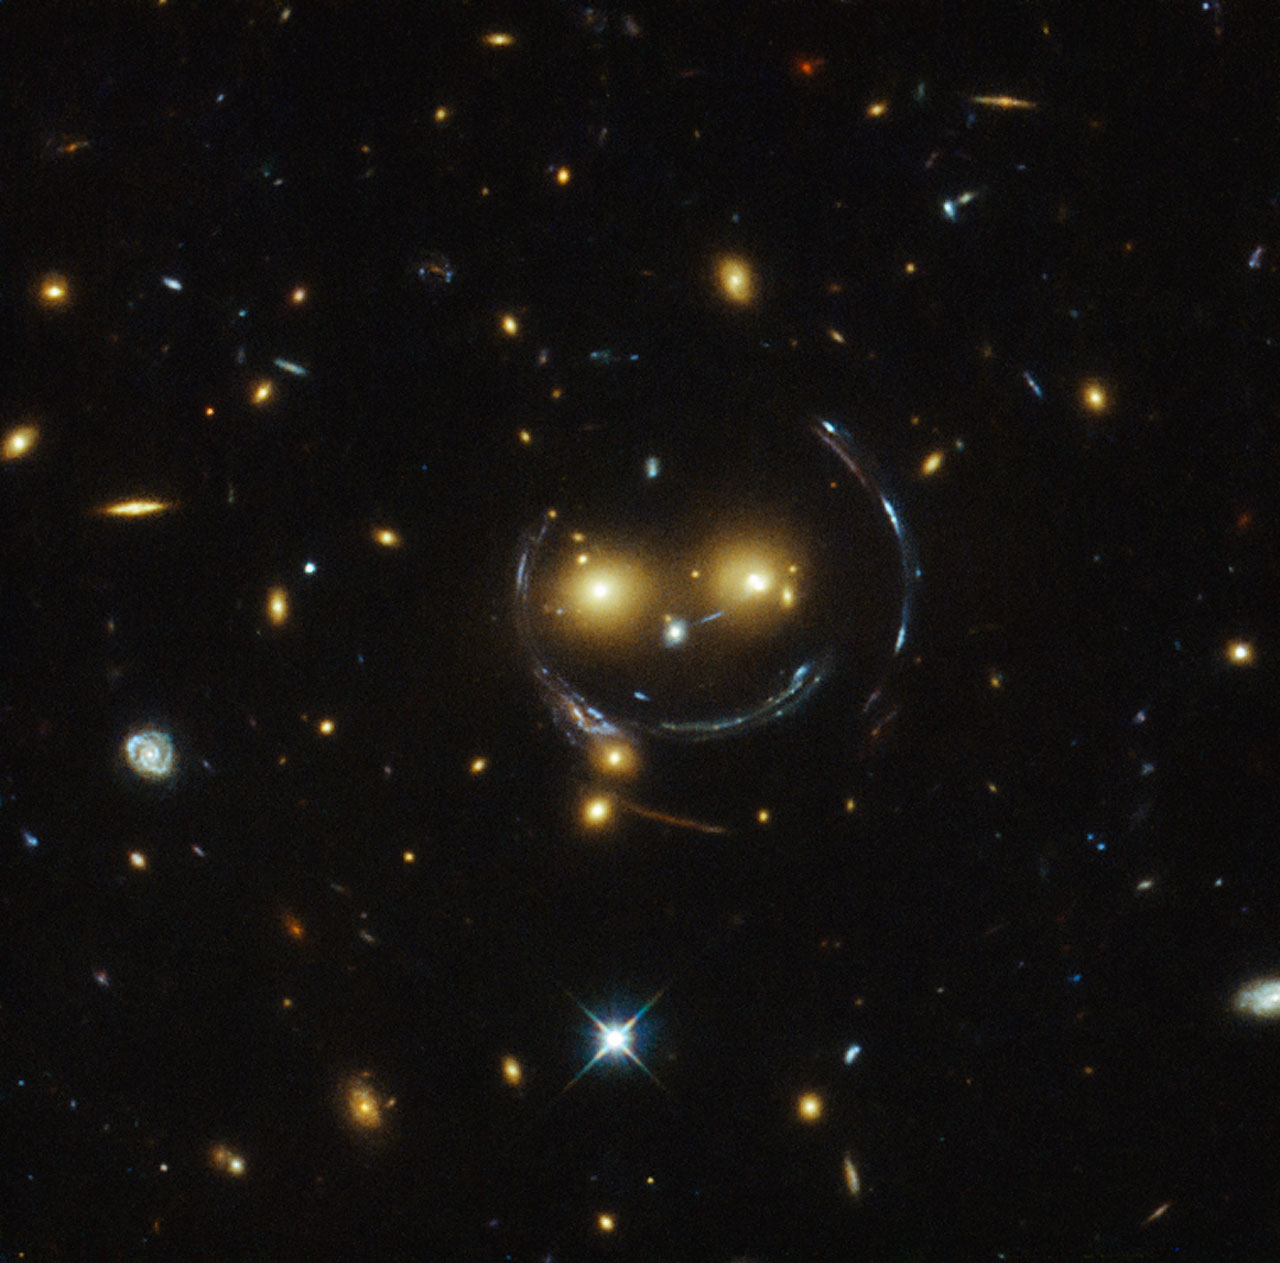 Hubble Spots a Cluster of Galaxies That Looks like a Massive Smiley Face